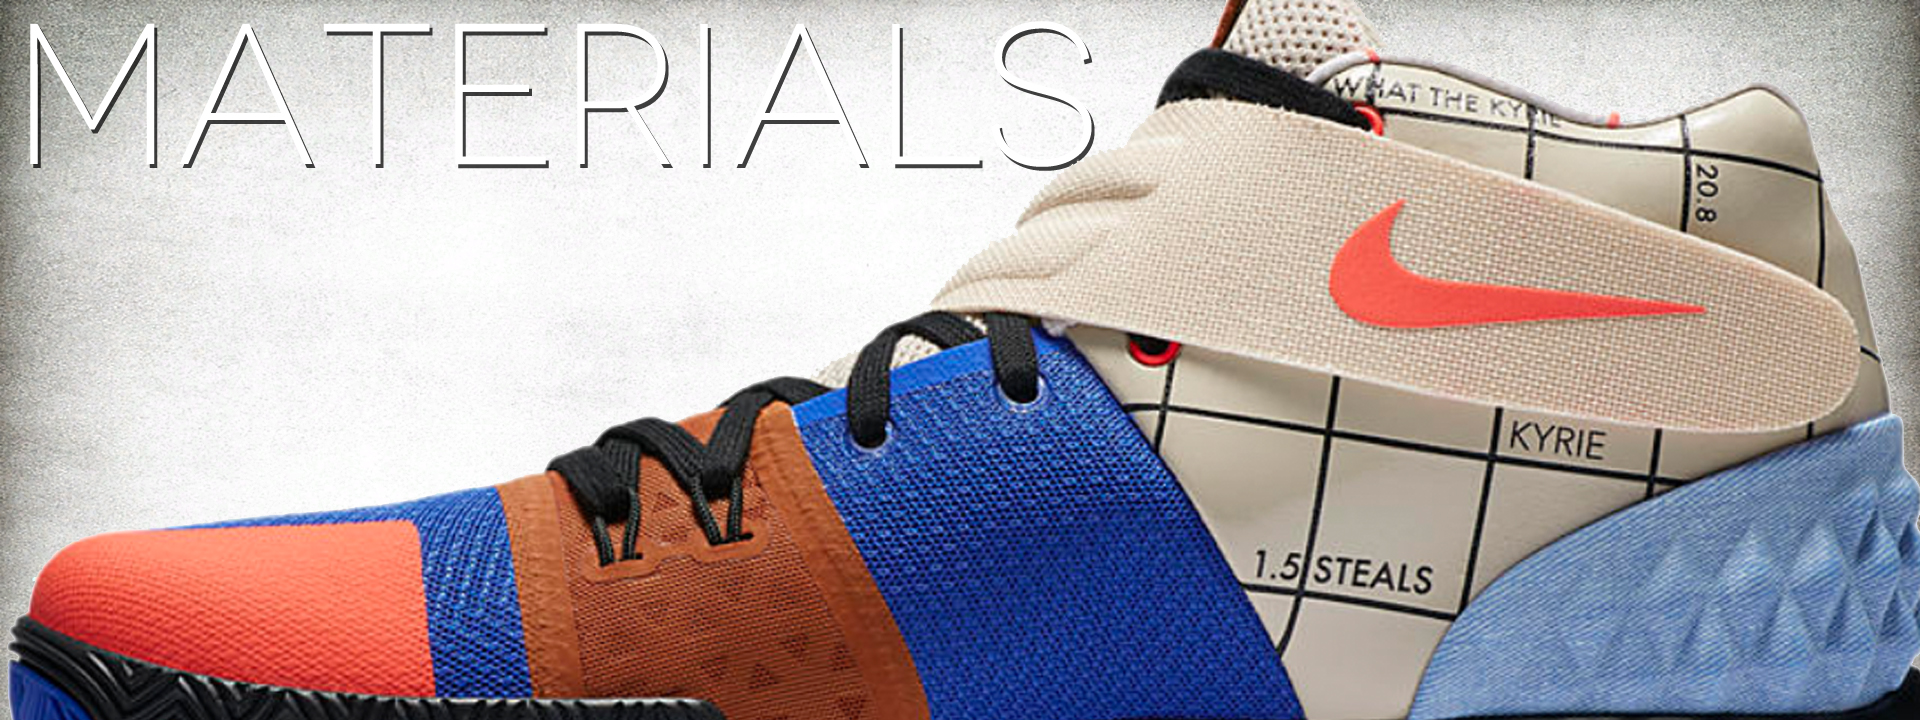 nike kyrie s1 hybrid performance review materials